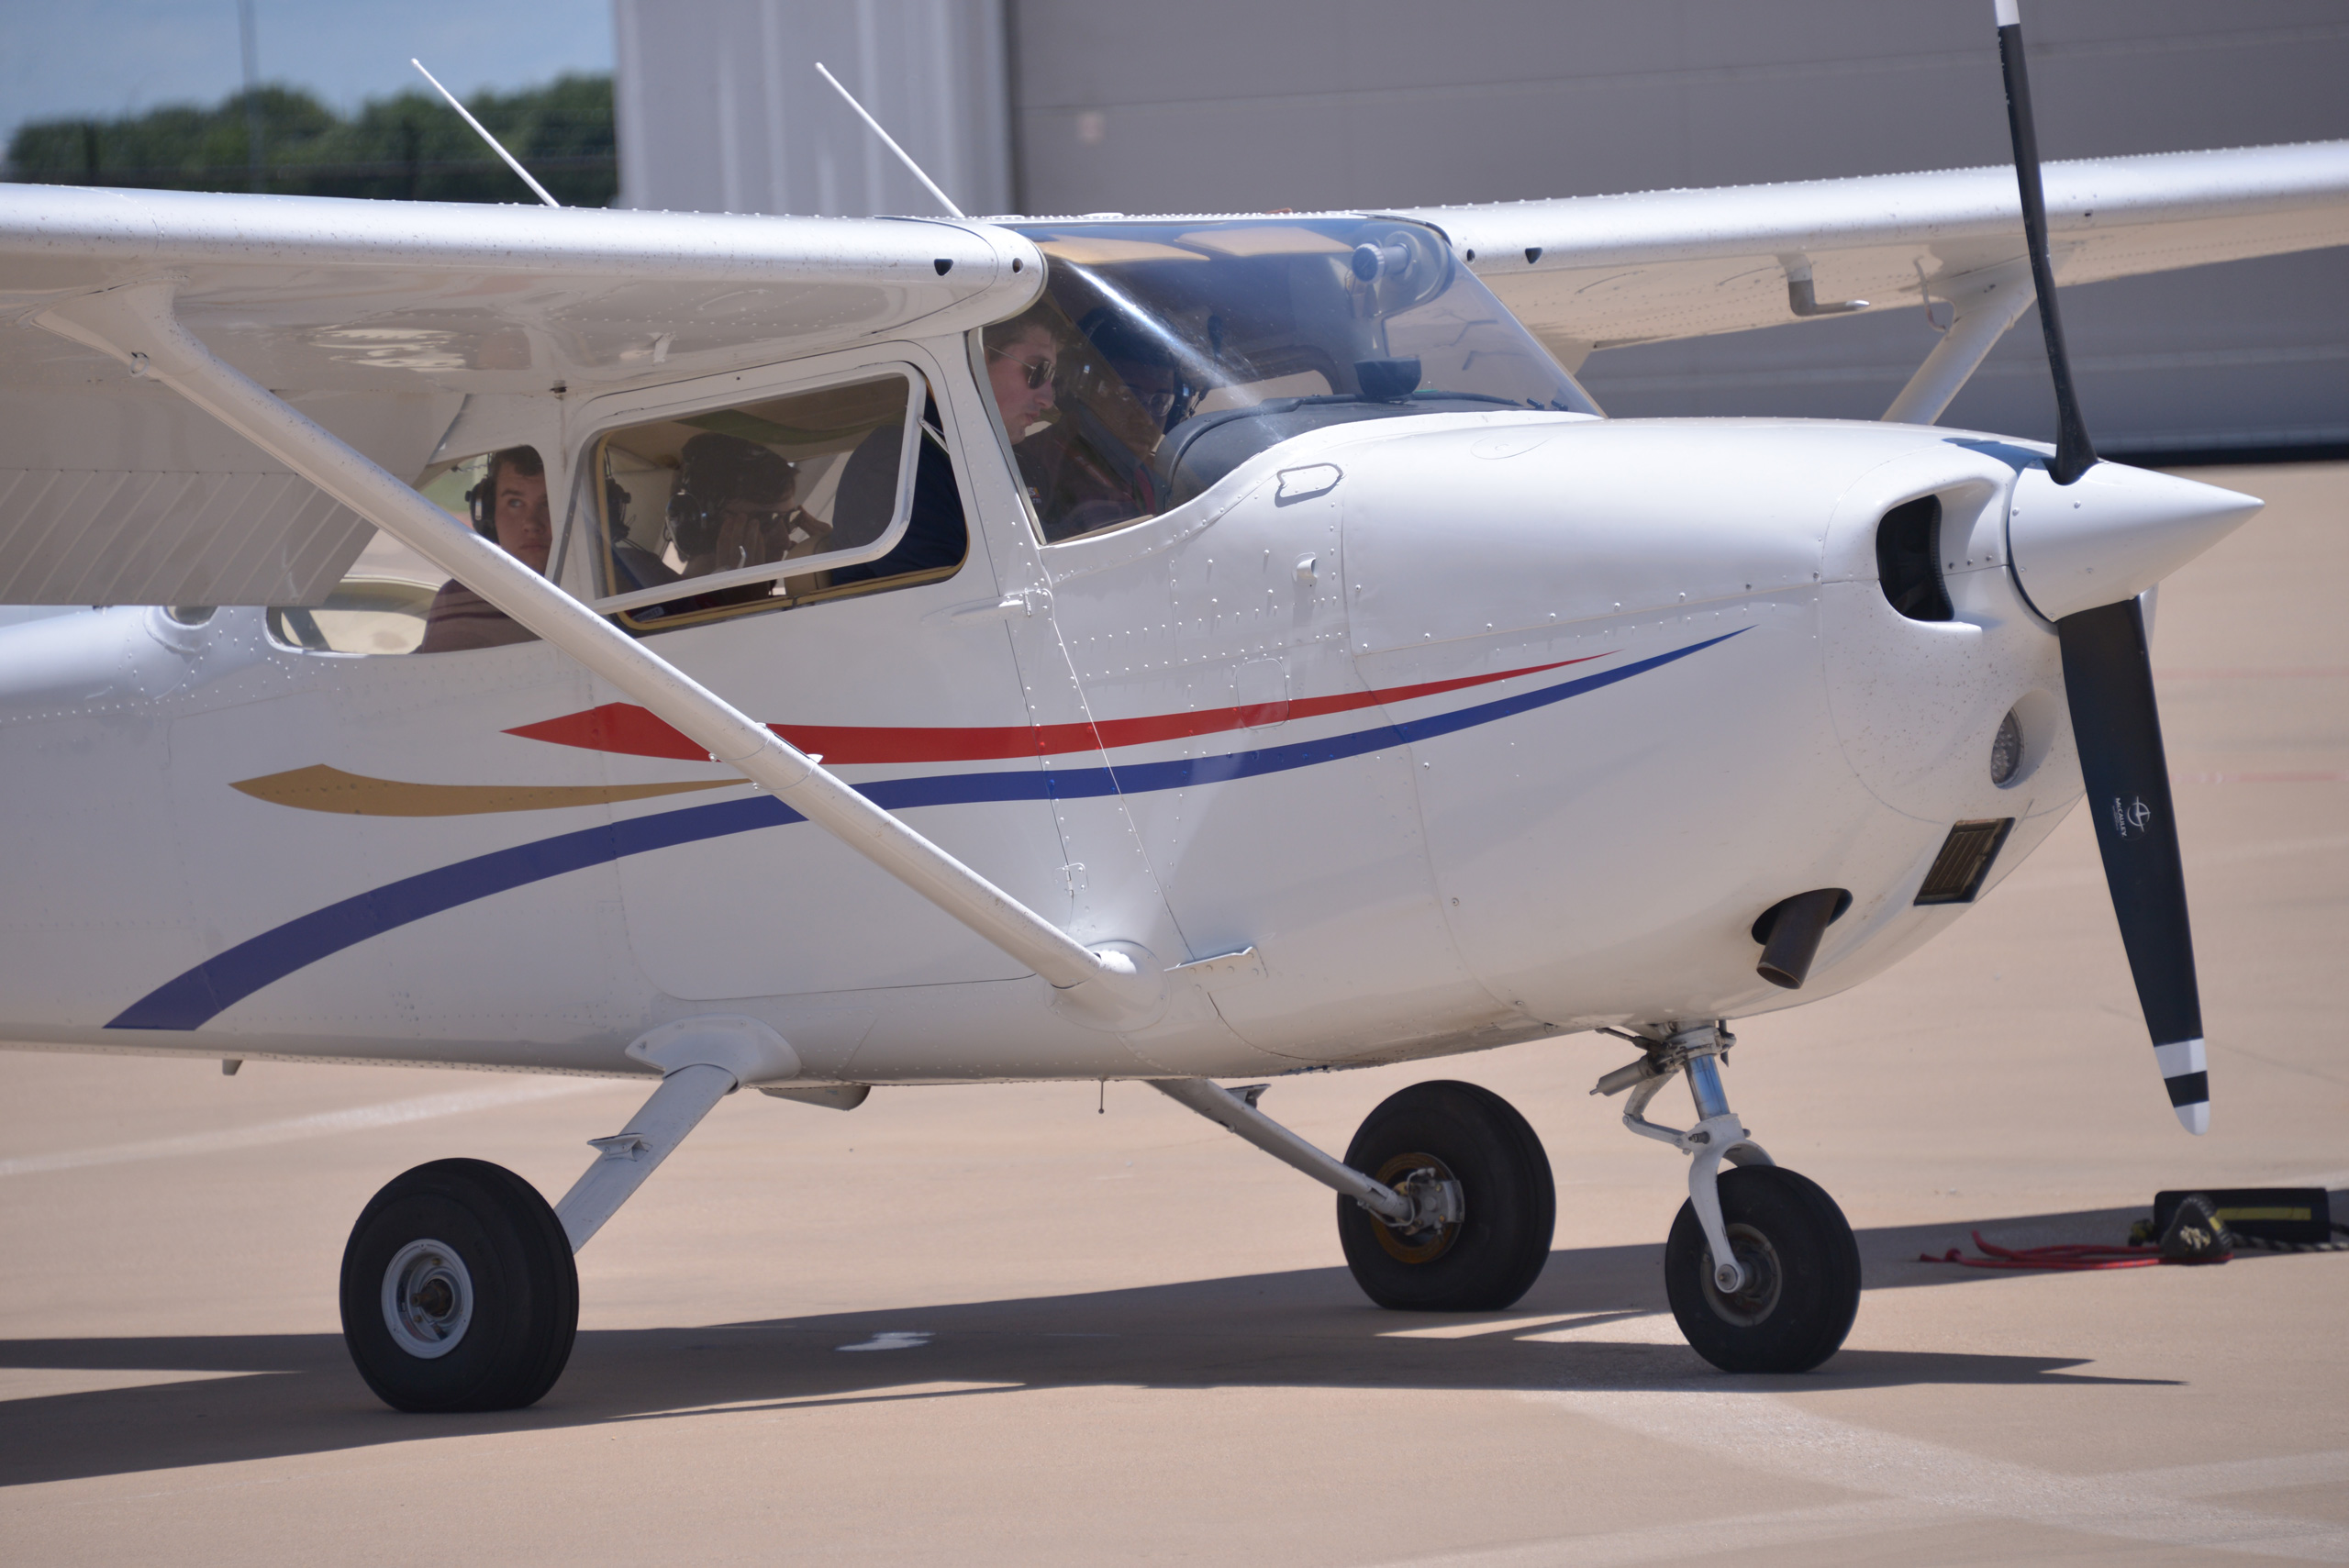 Exterior shot of small airplane.